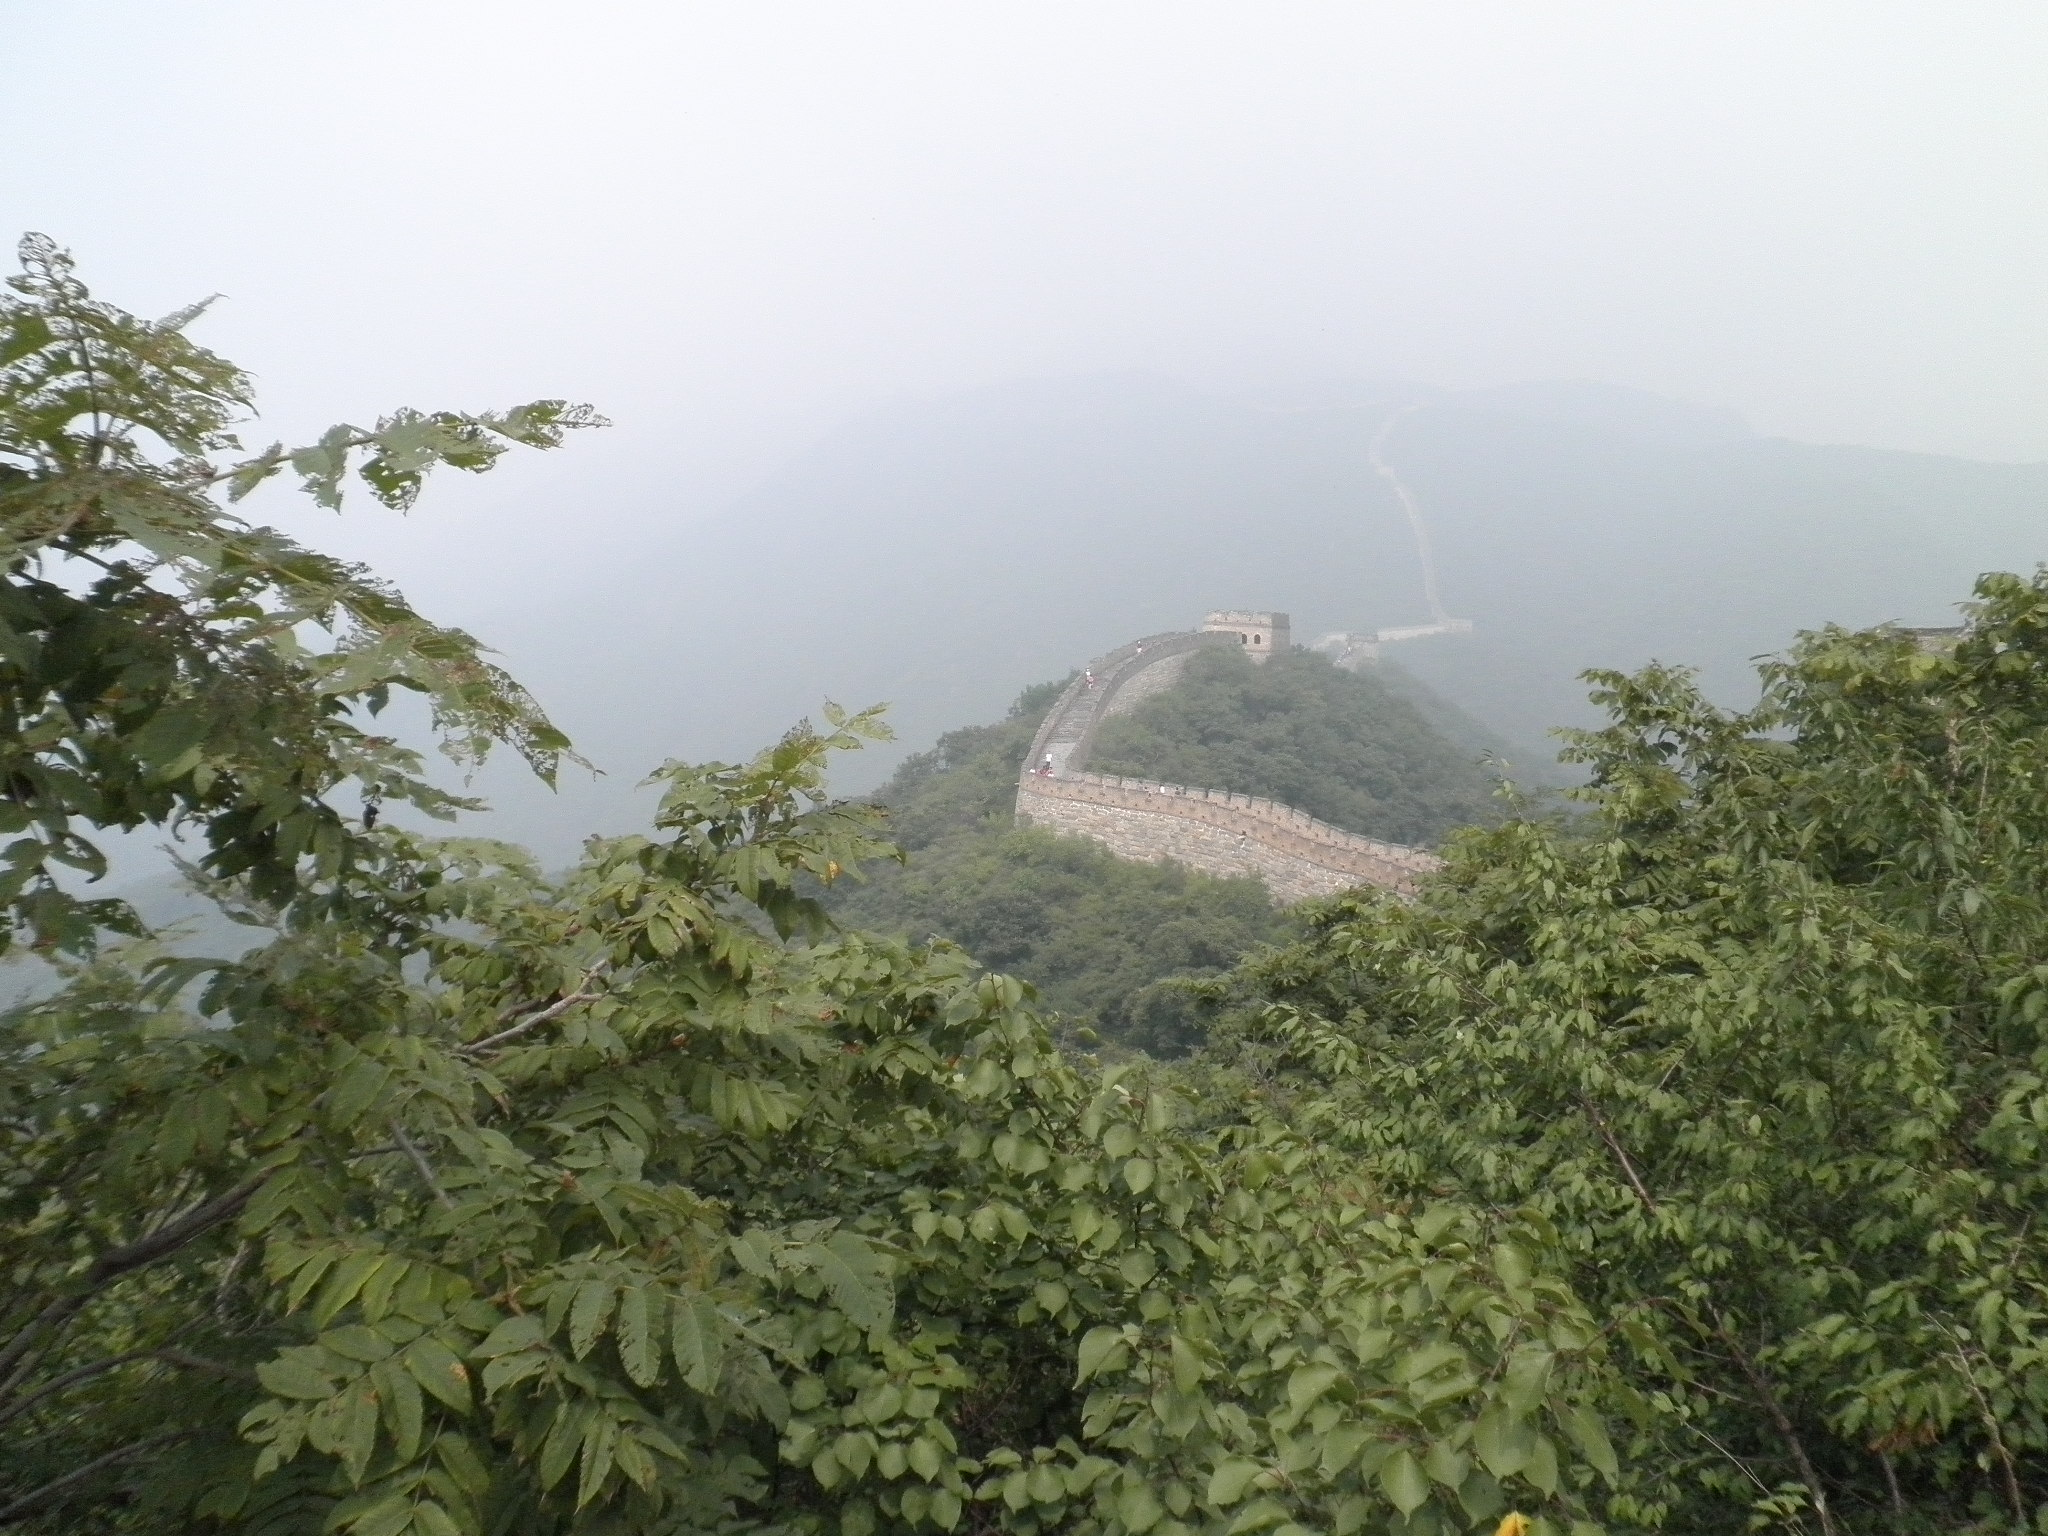 The Great Wall of China is all that! Travelling Homebody says it should be on everyone's bucket list.